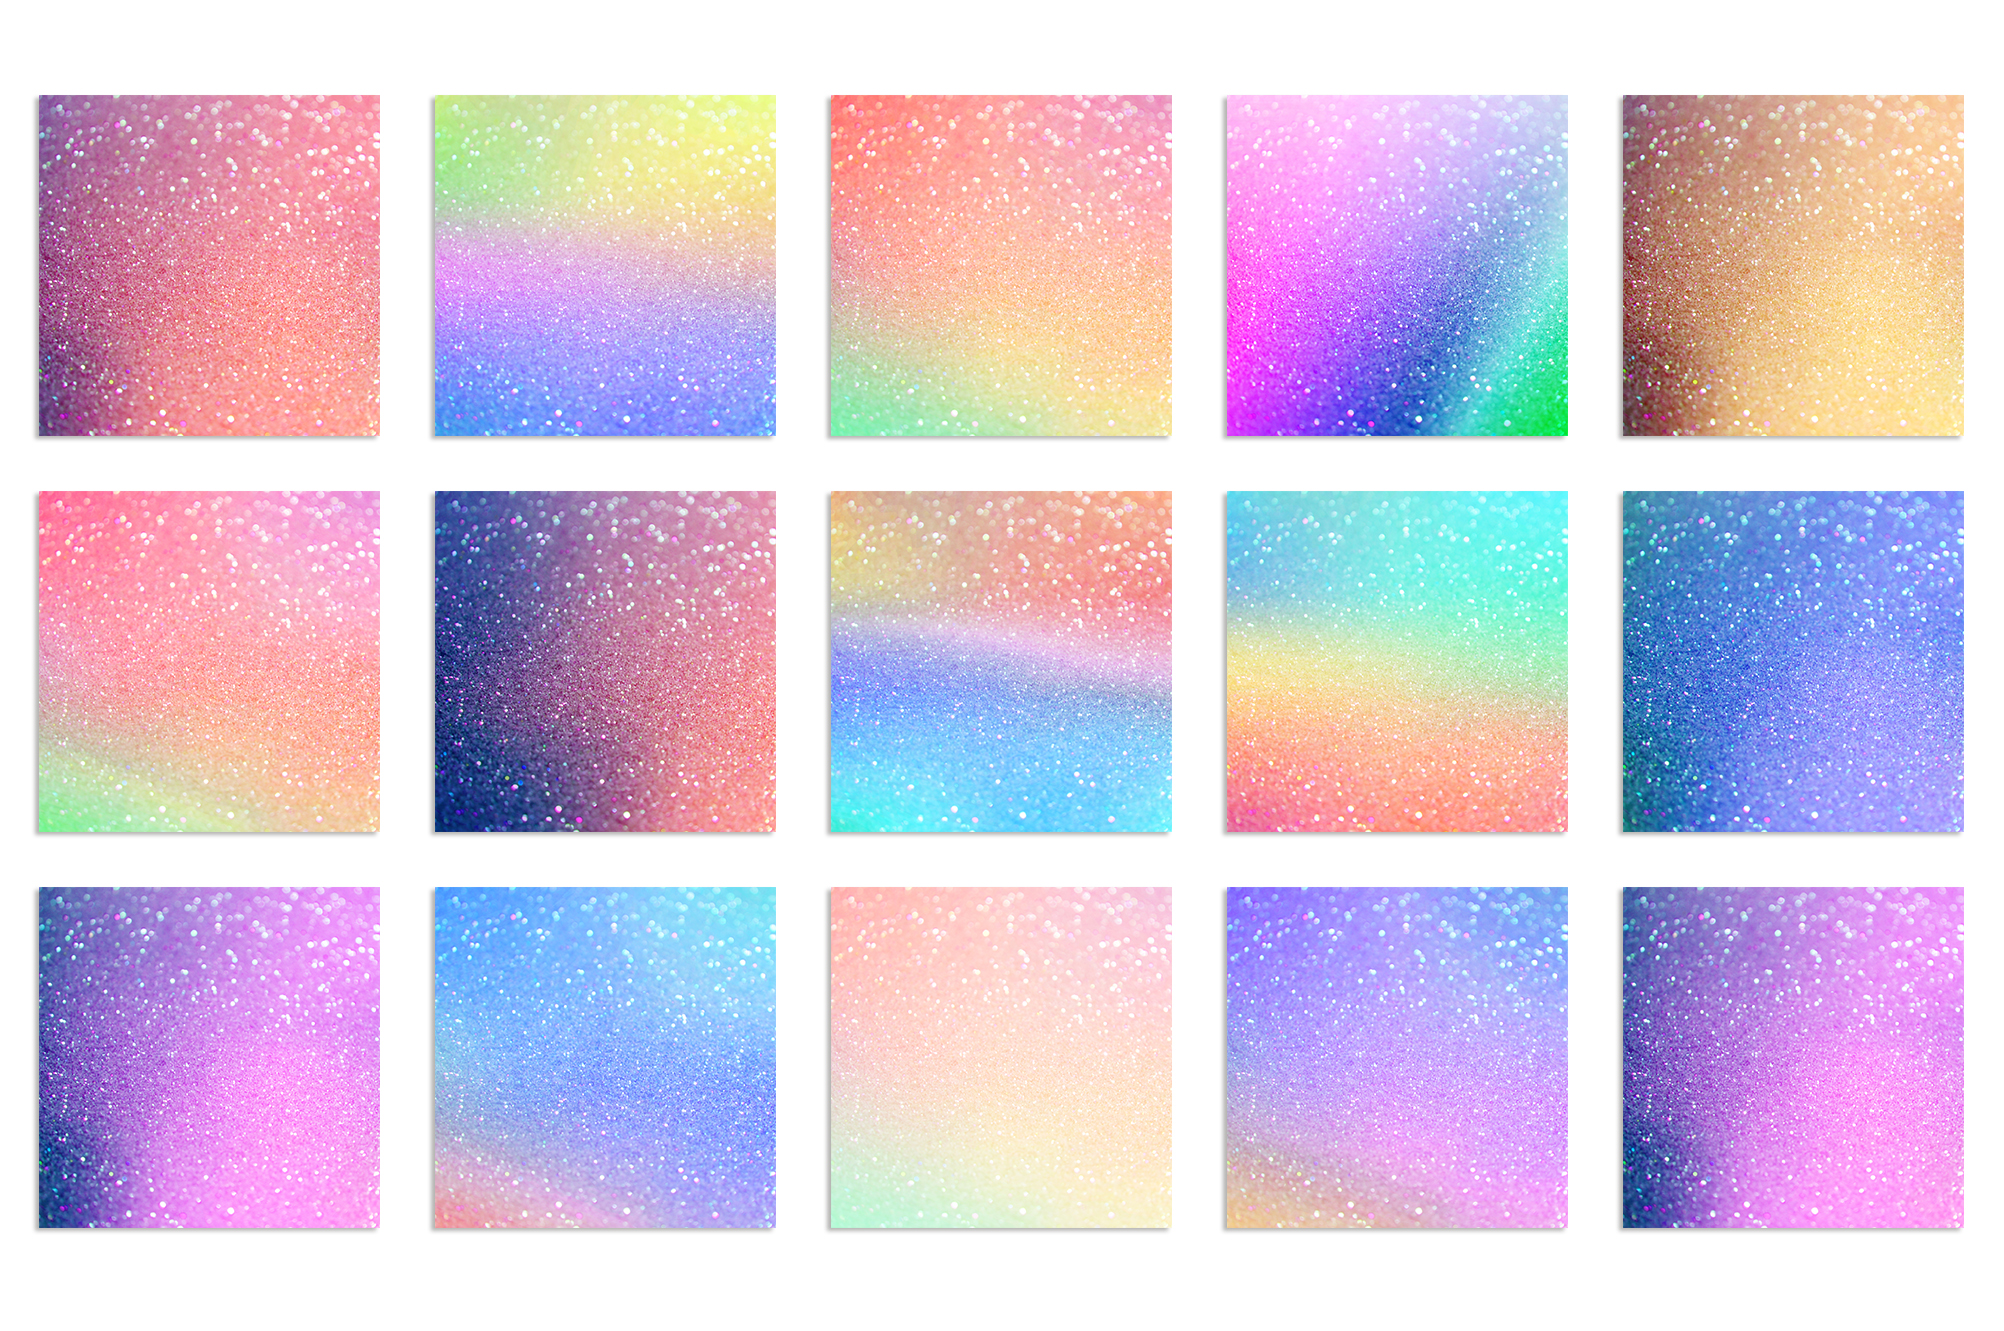 Gold Marble and Iridescent Glitter Textures BUNDLE example image 9